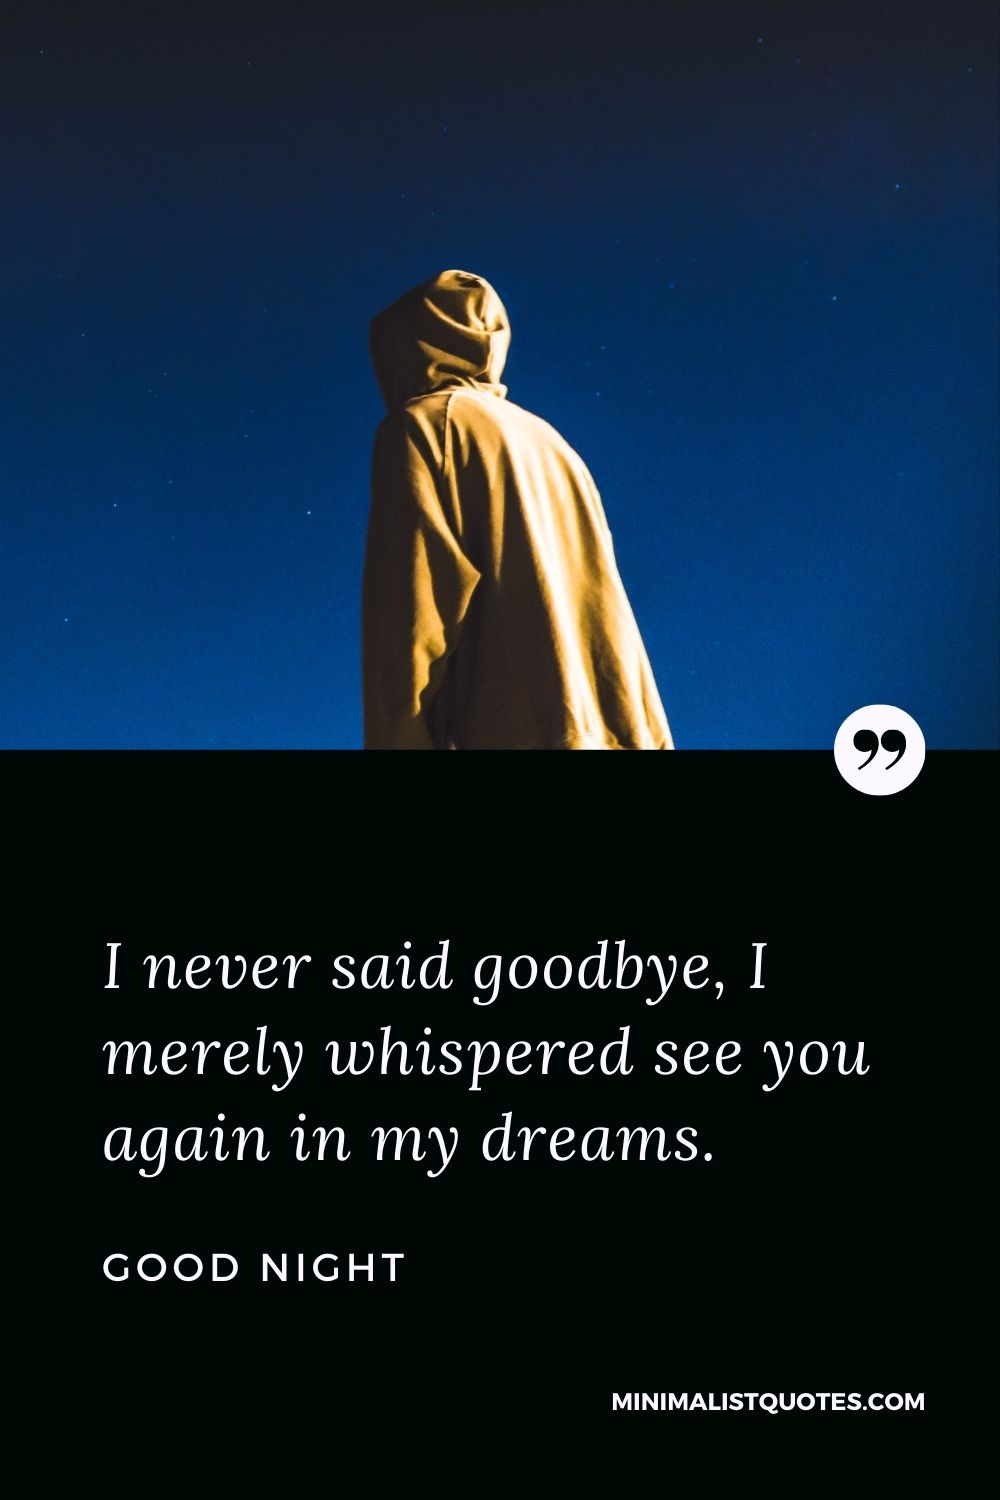 Good Night Wishes - I never said goodbye, I merely whispered see you again in my dreams.